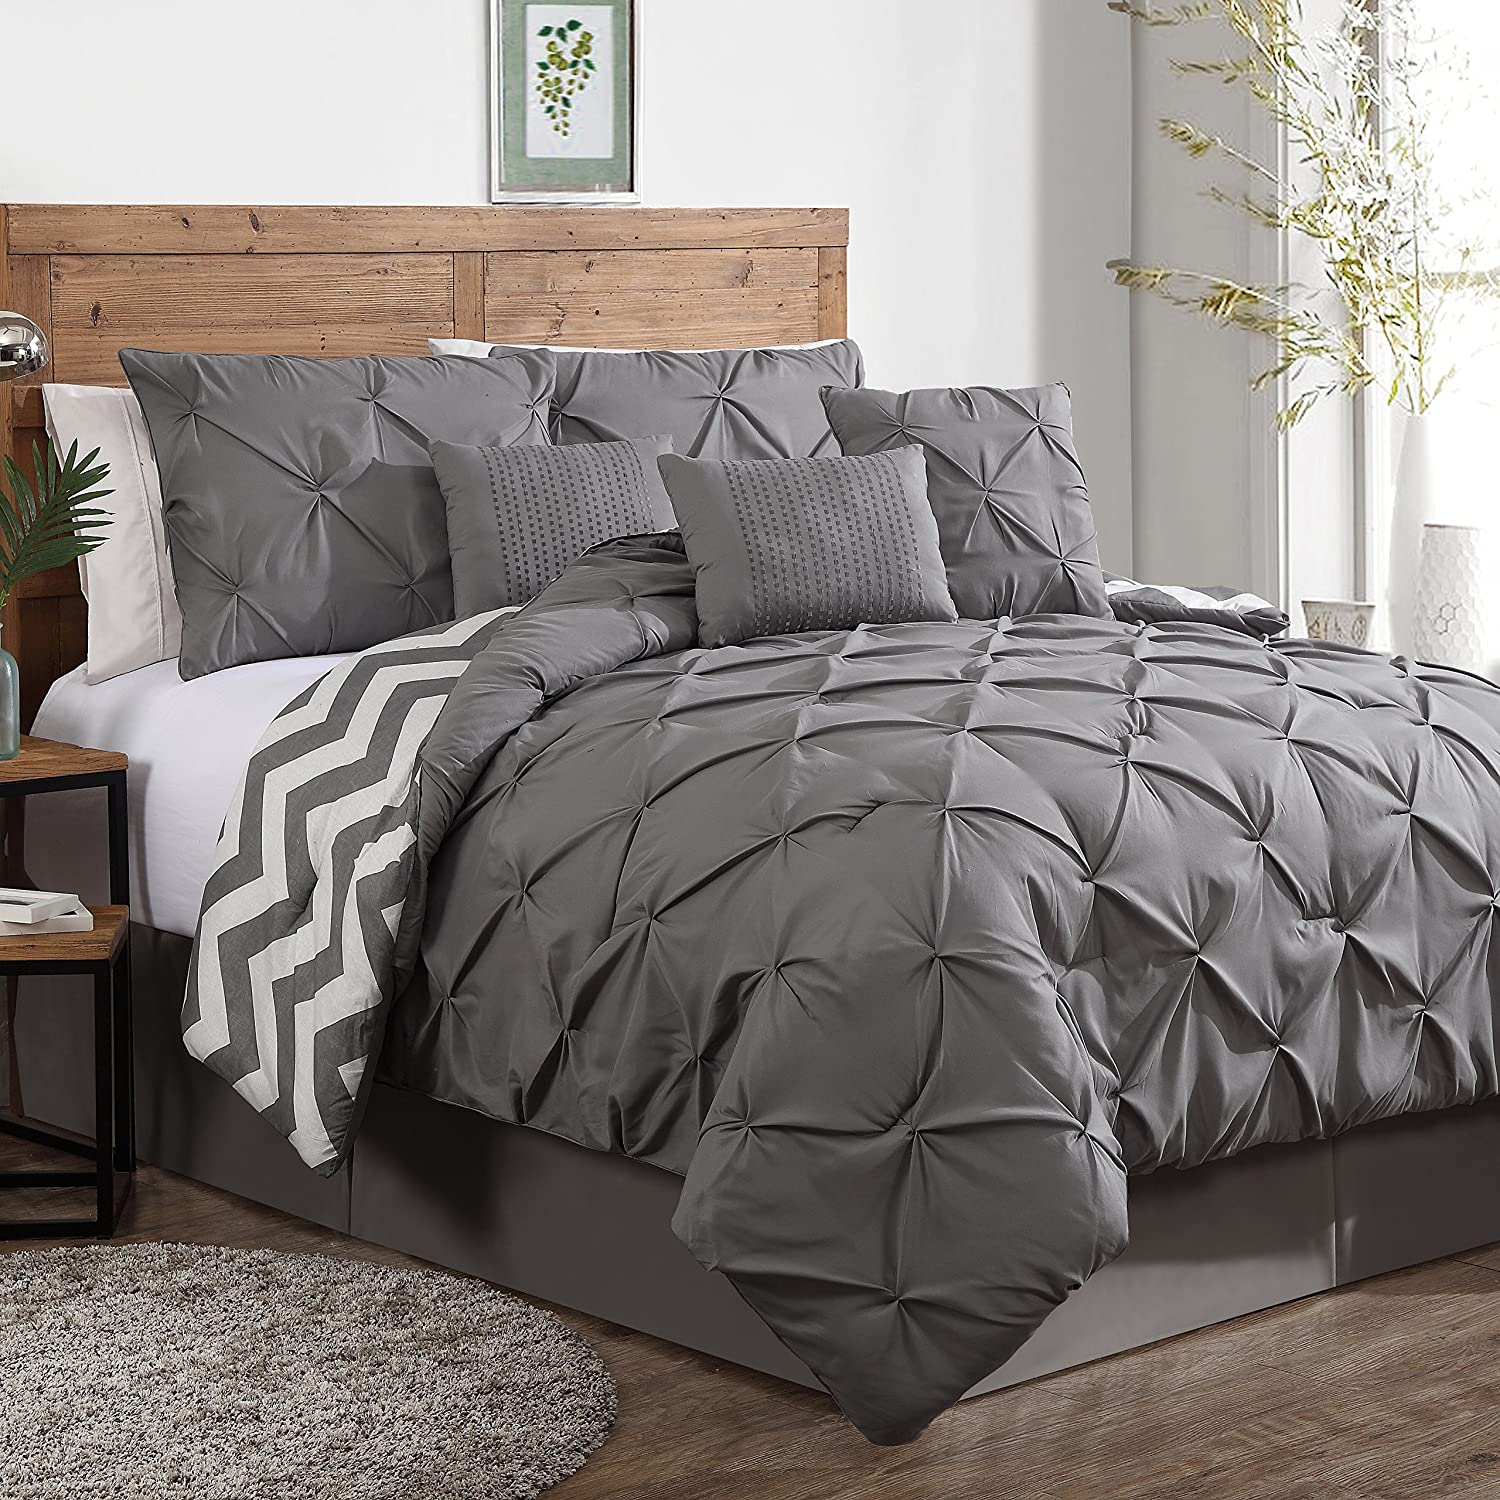 Avondale Manor 7-Piece Ella Pinch Pleat Comforter Set, Queen, Grey